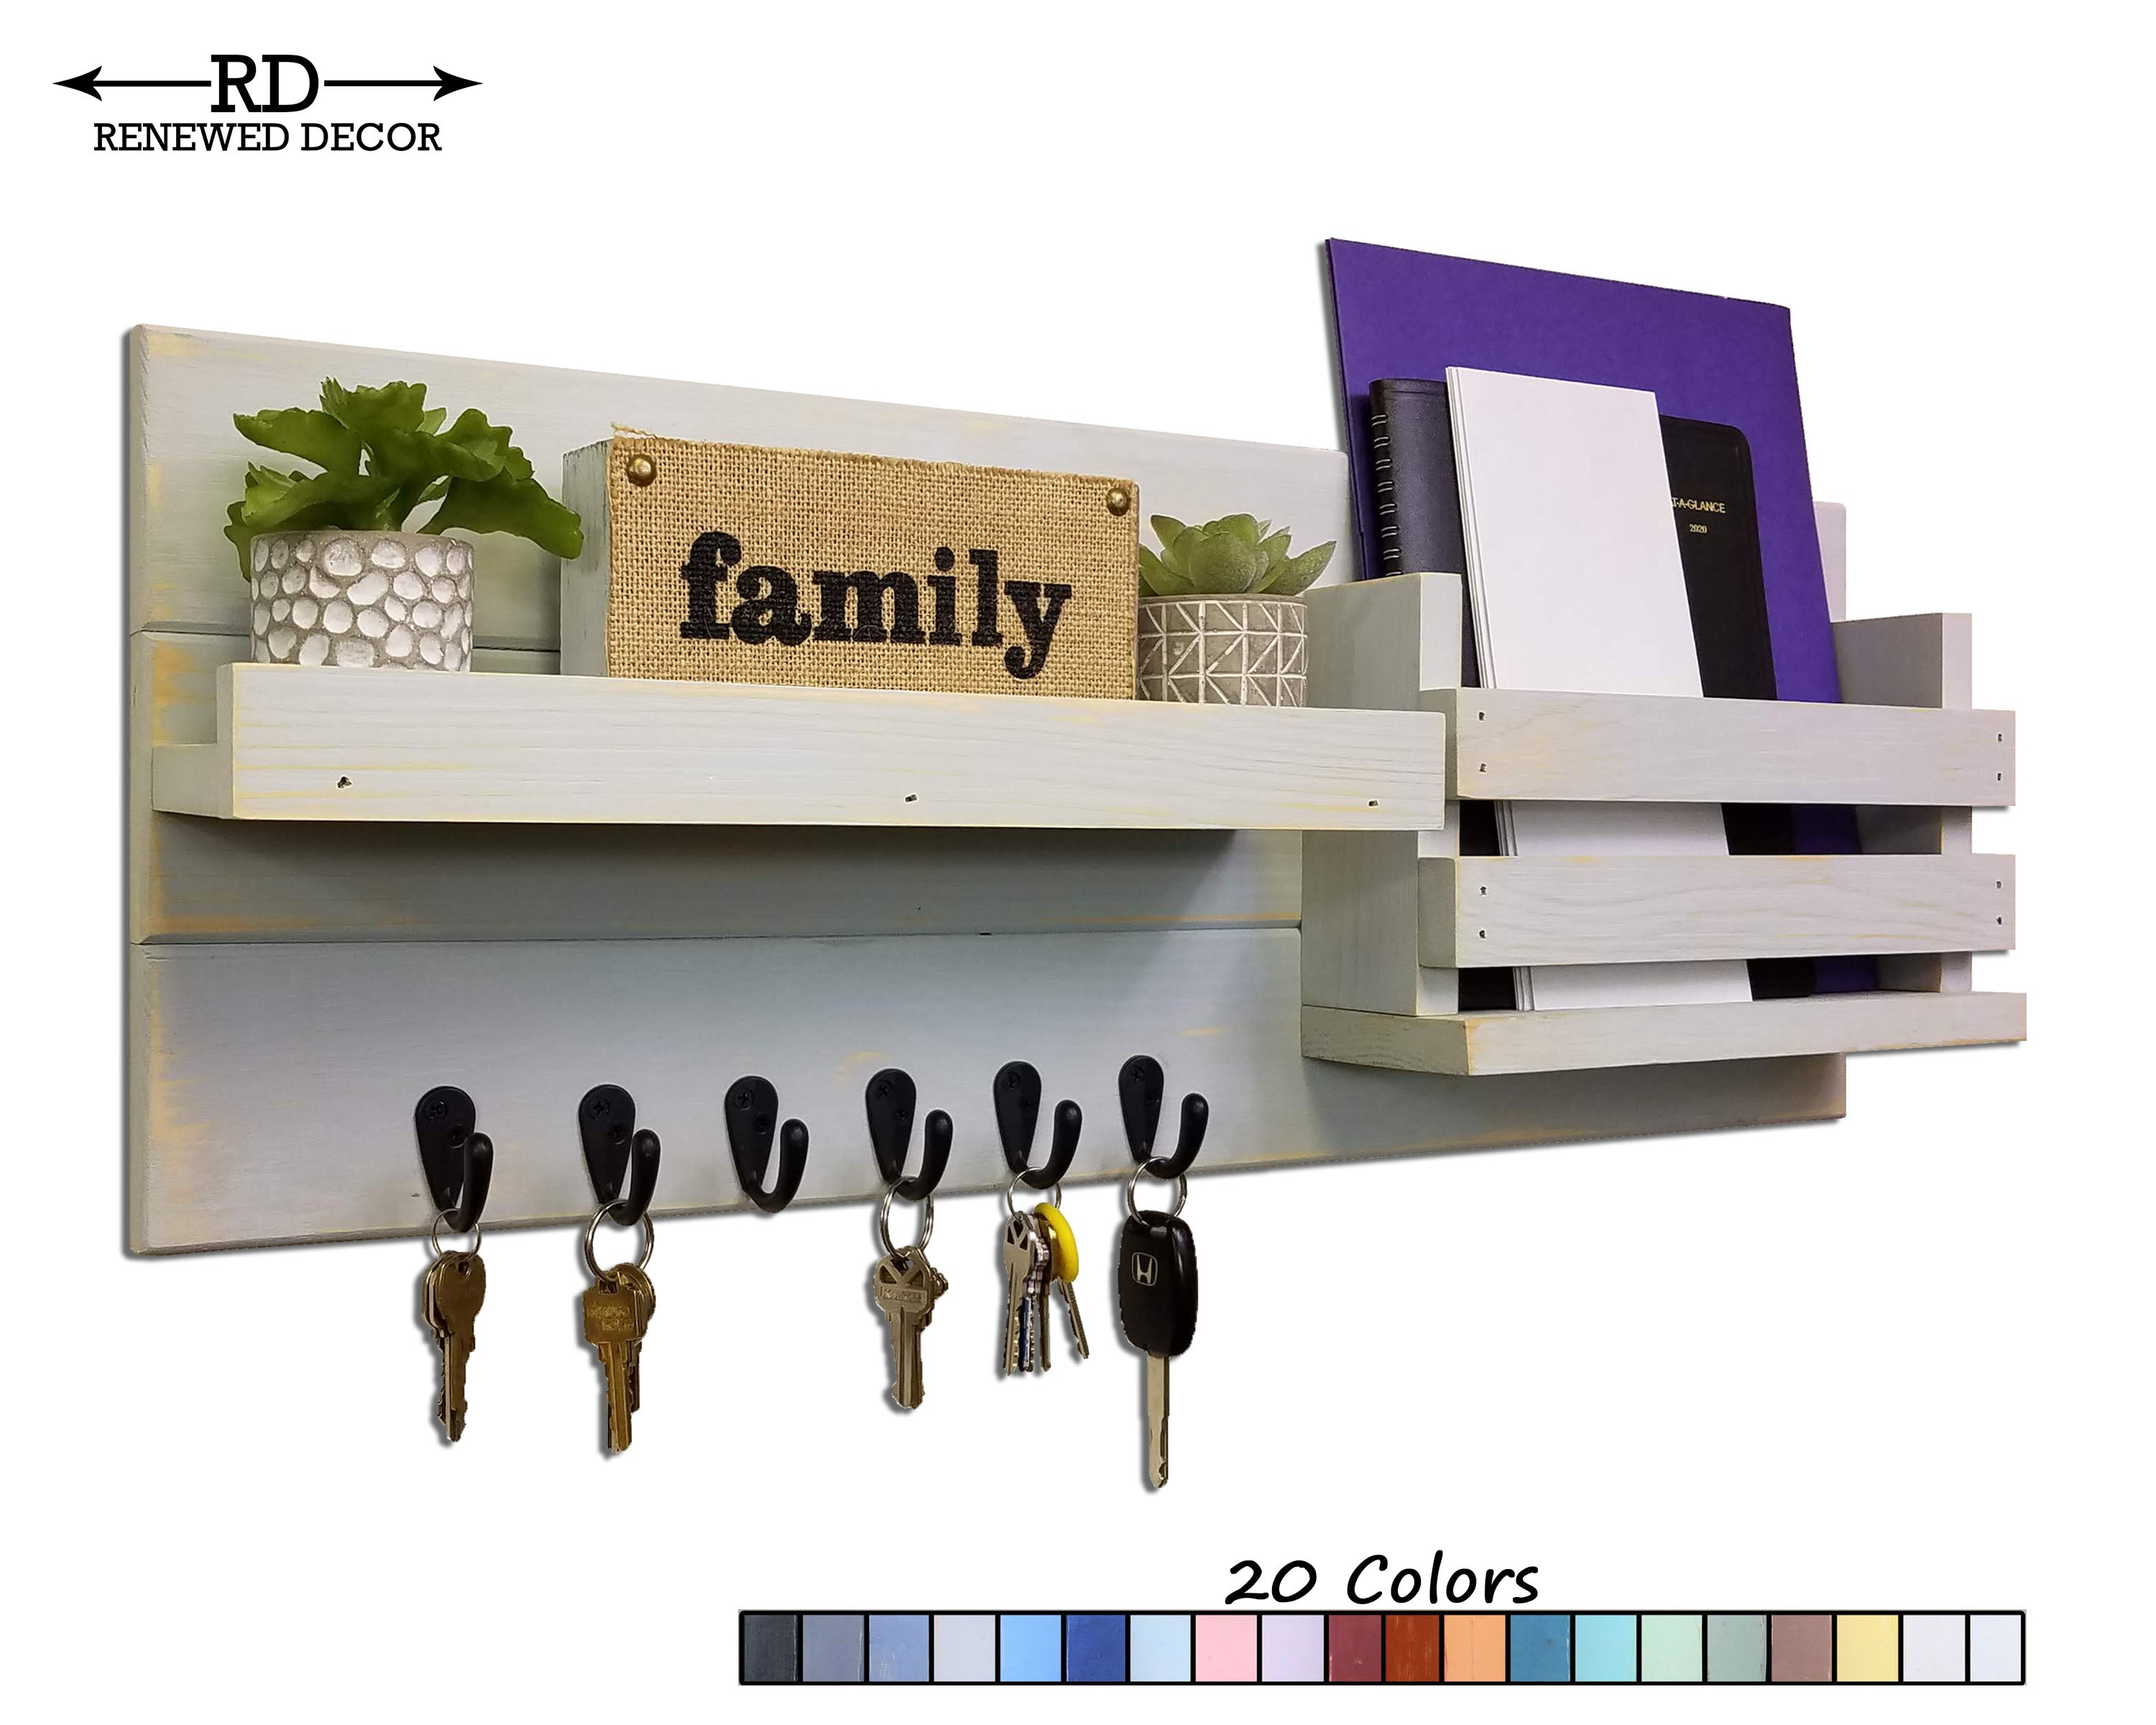 Greatland Wall Mounted Organizer - 20 Paint Colors - Renewed Decor & Storage